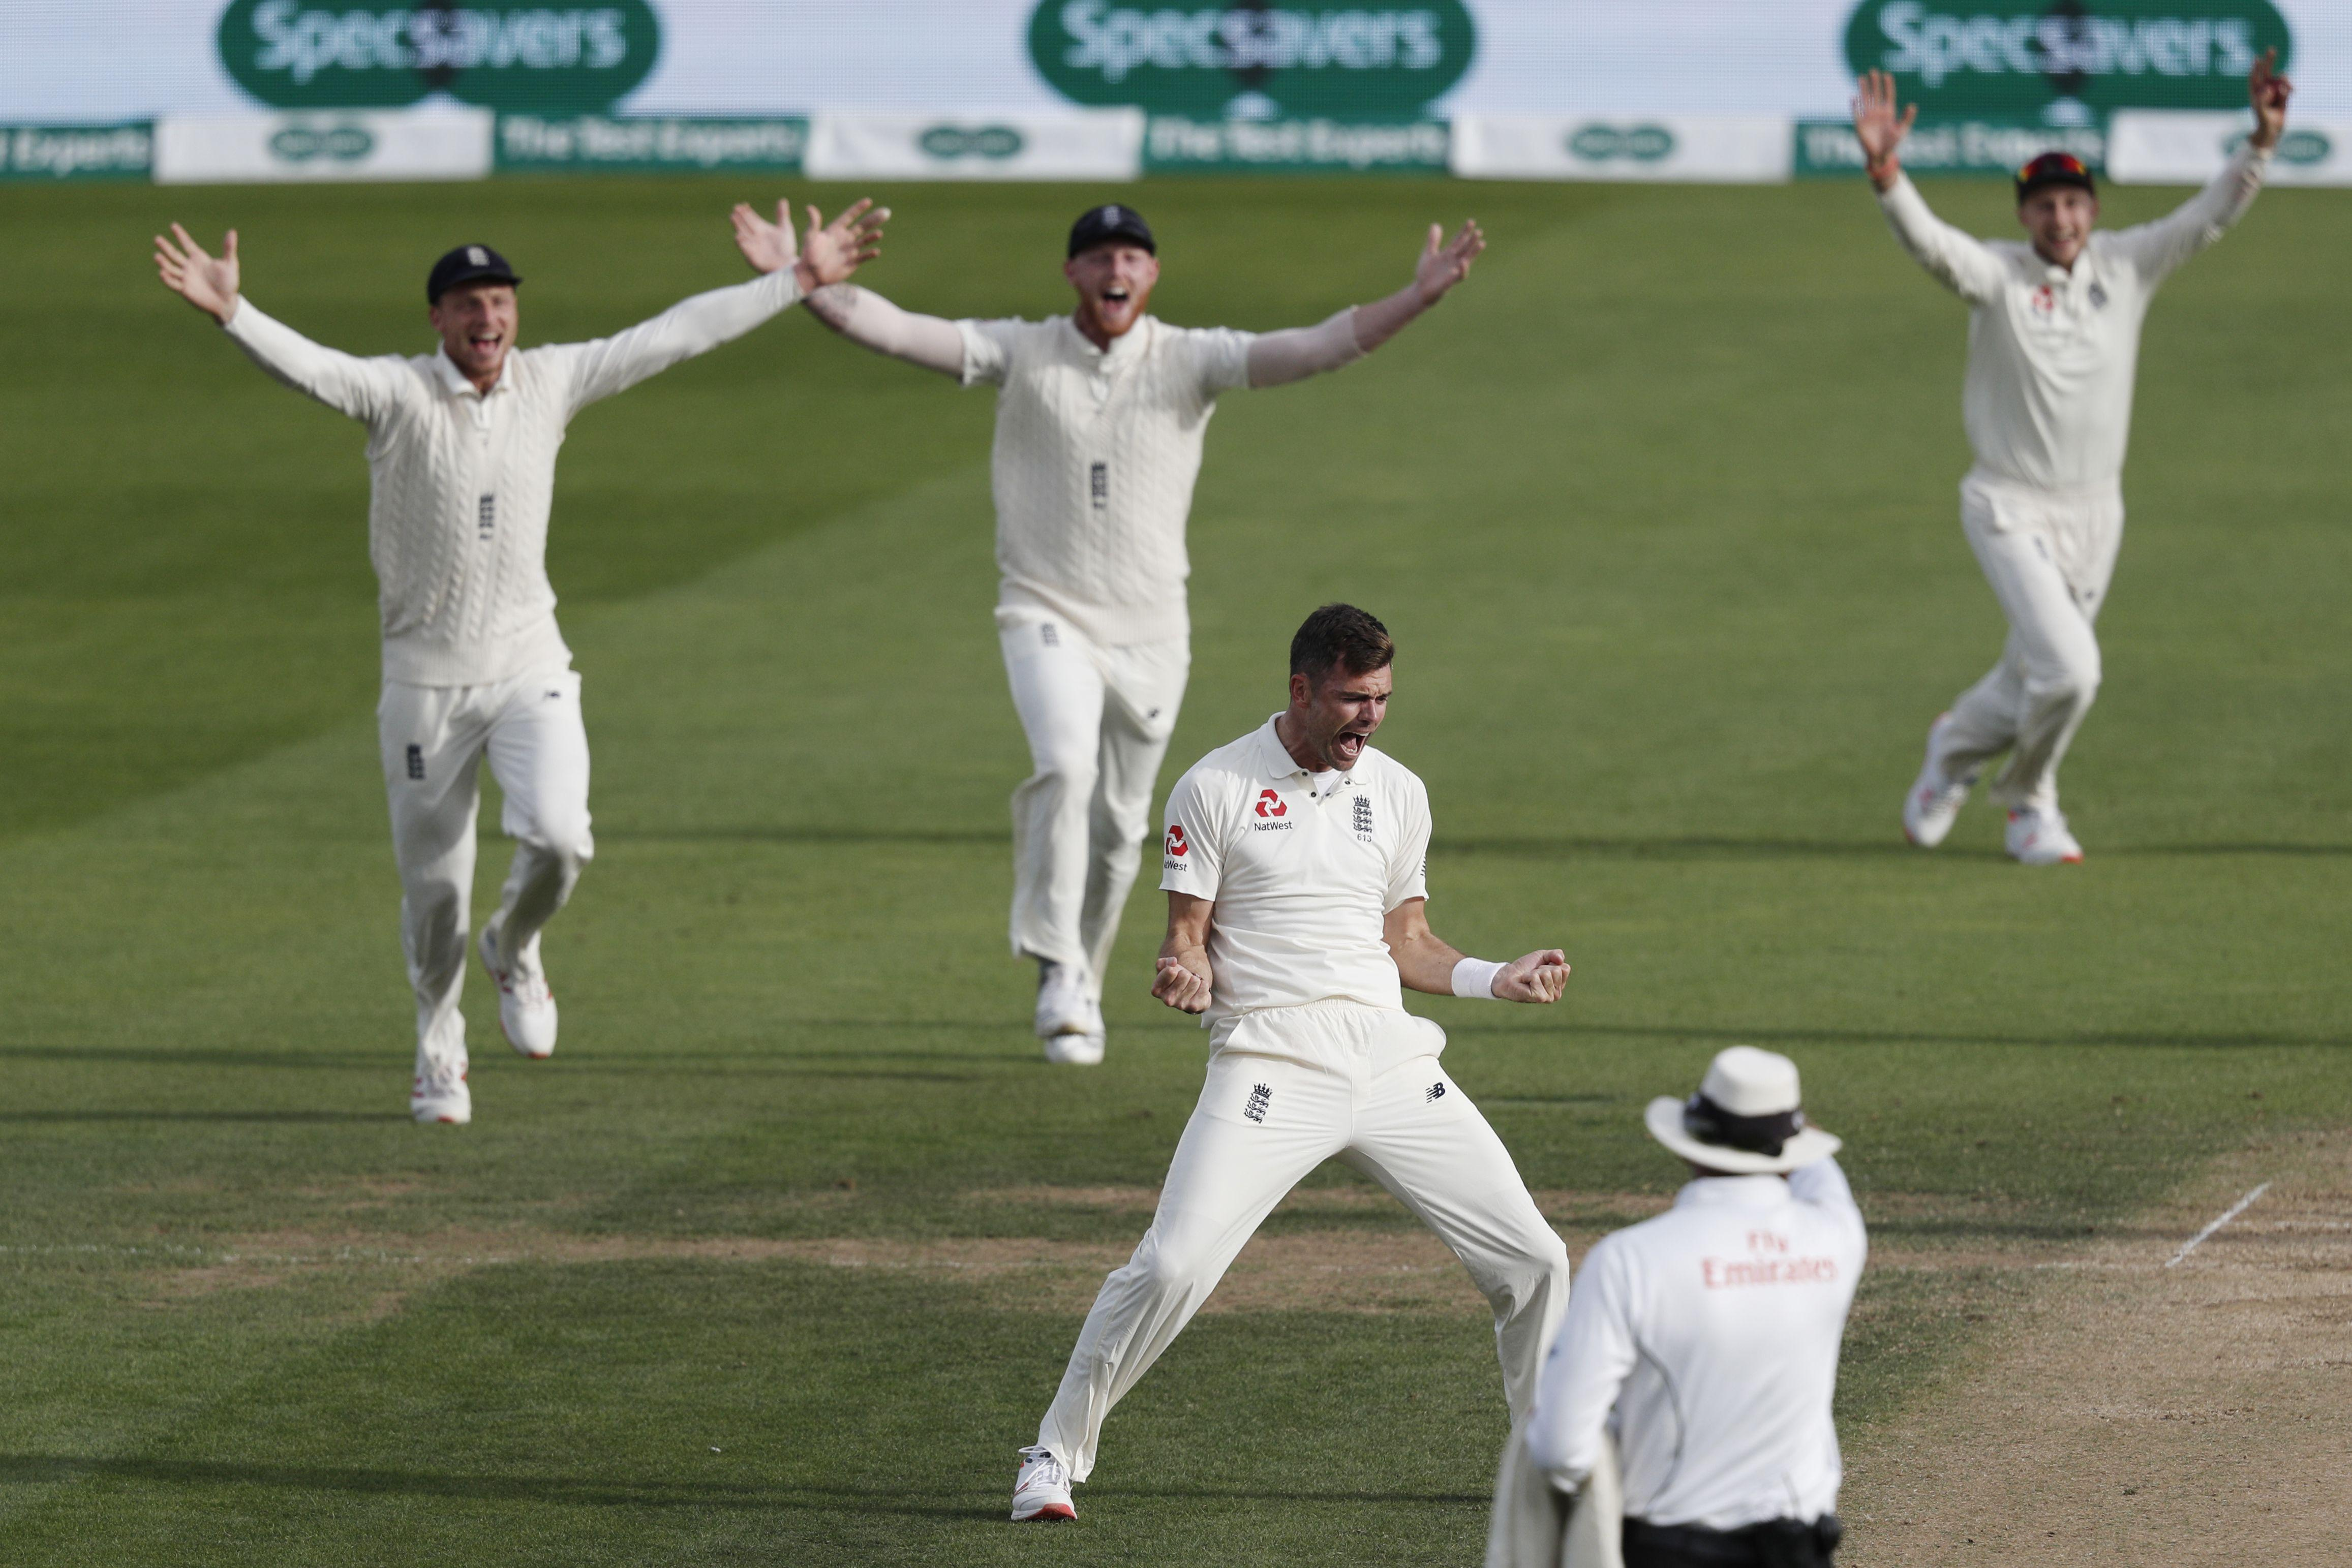 Anderson took two wickets on Day Four against India at the Oval to move on to 563 Test wickets